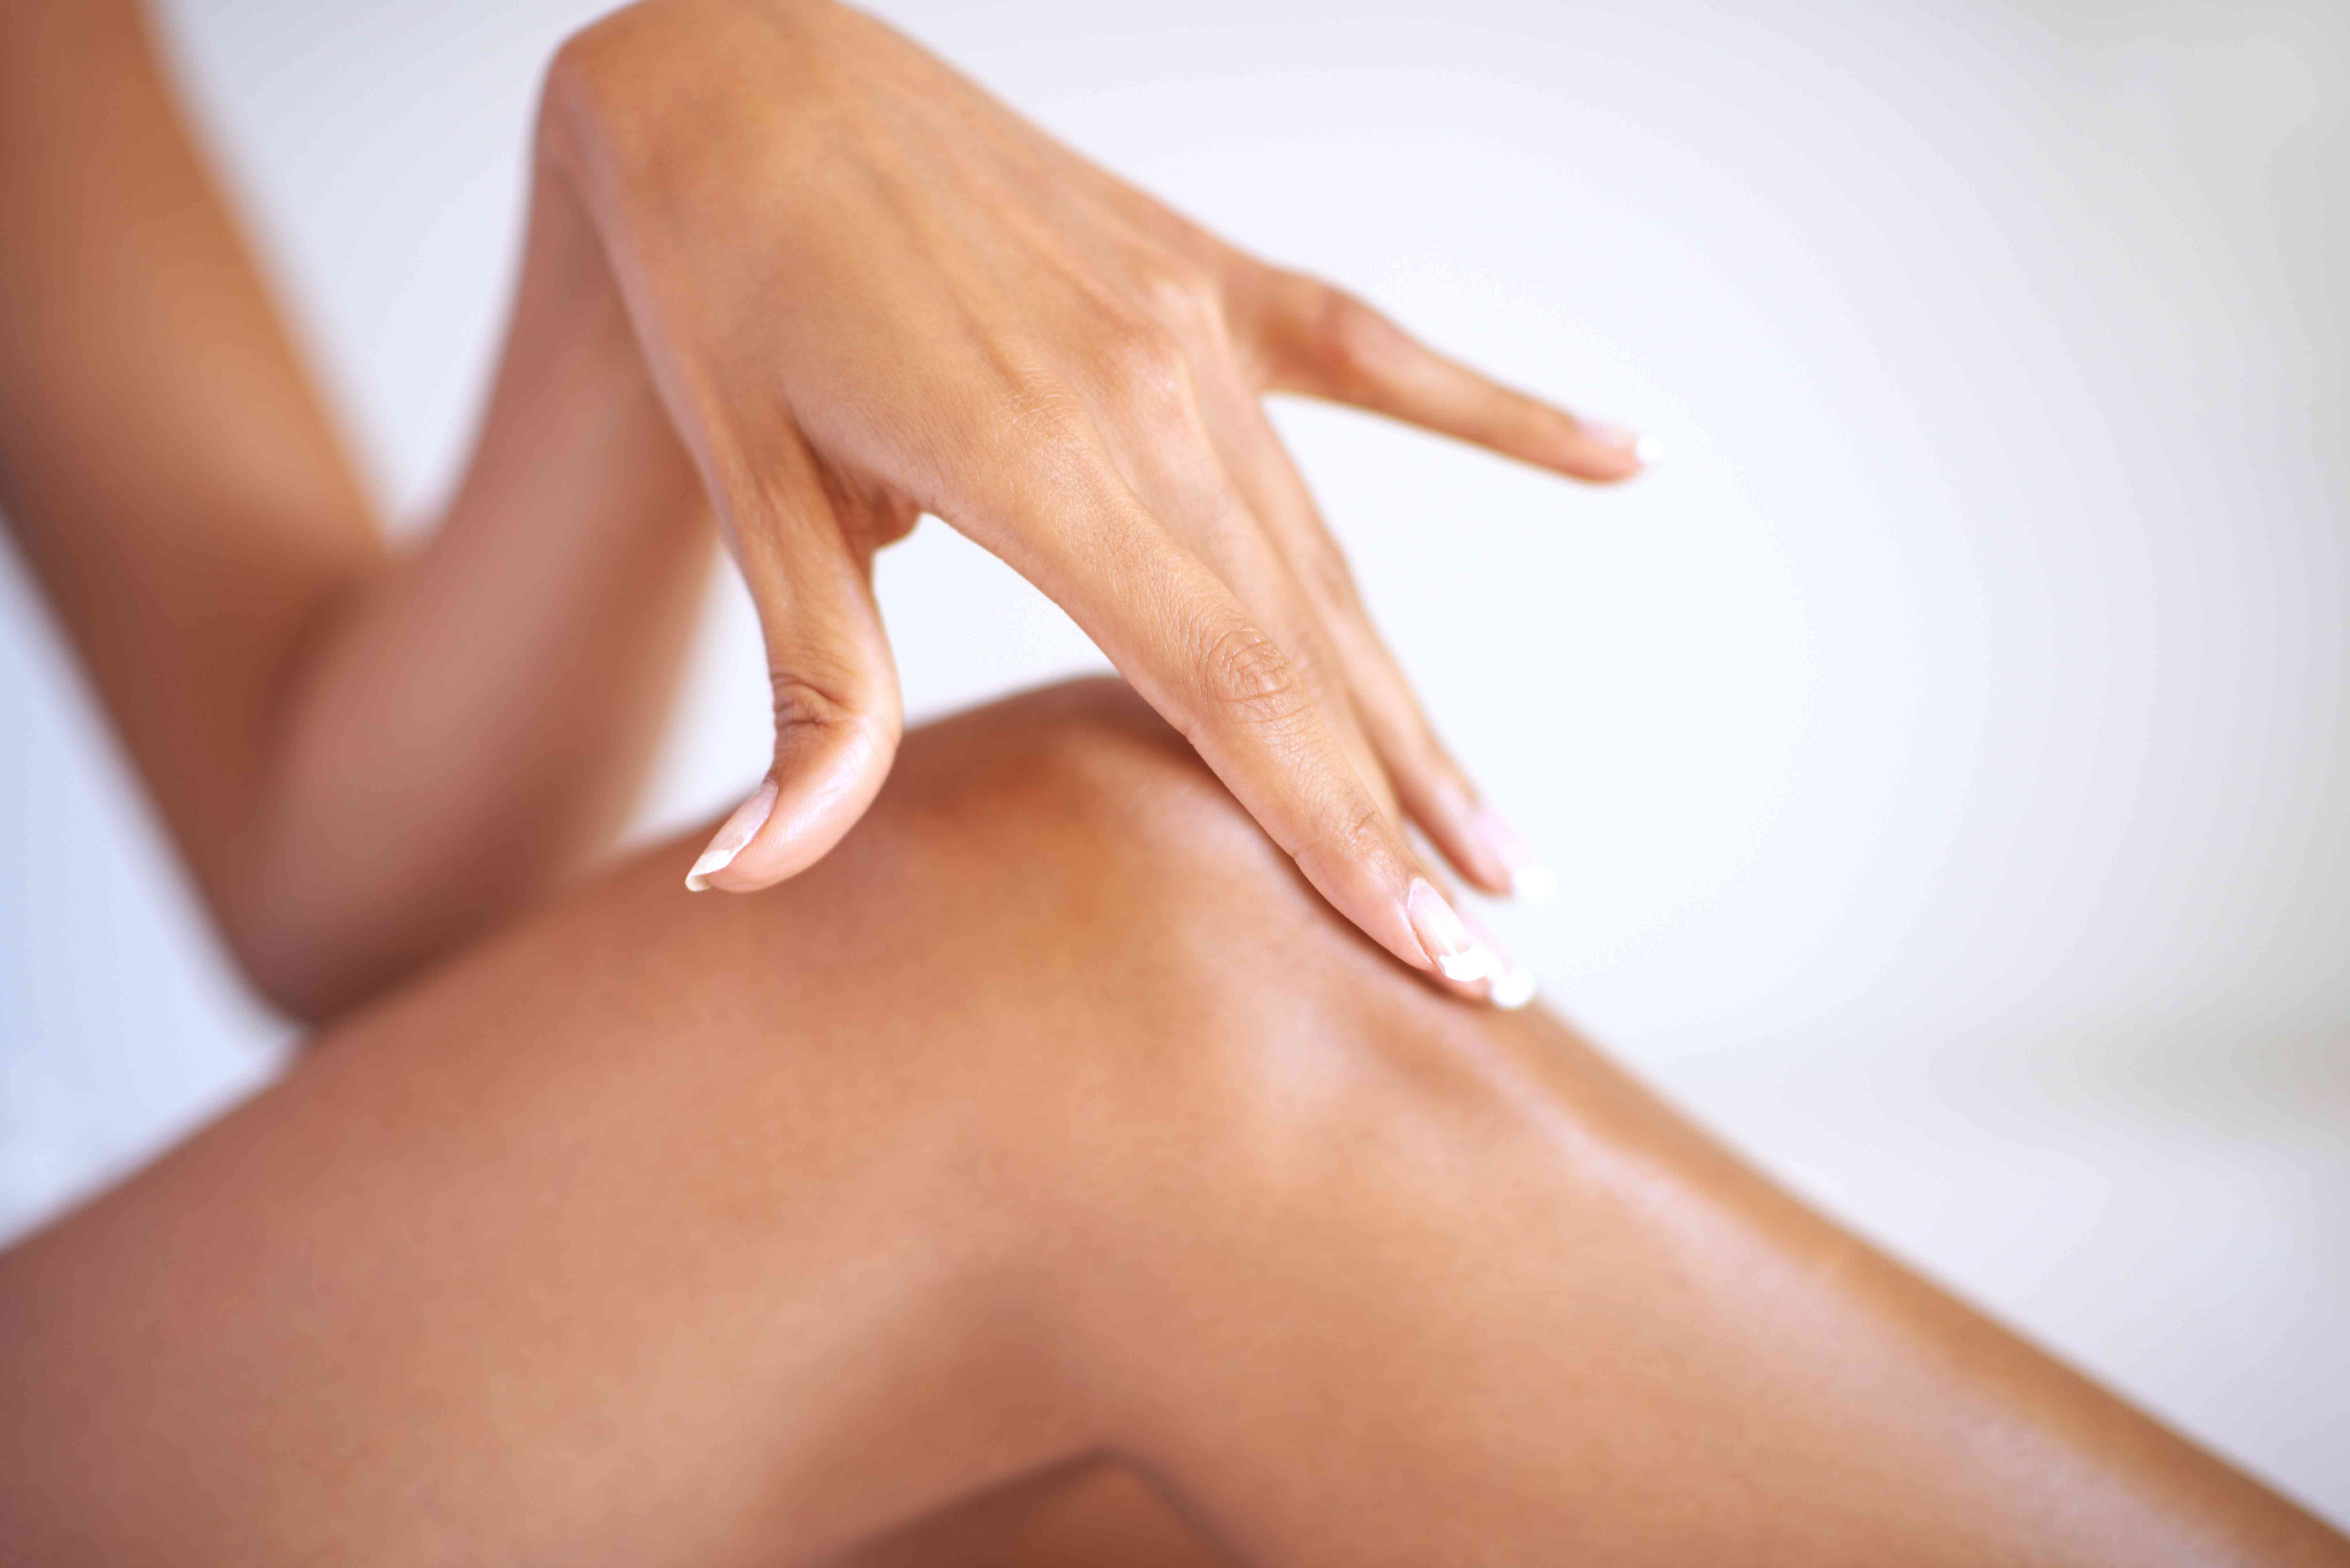 A woman caressing the skin of her knee